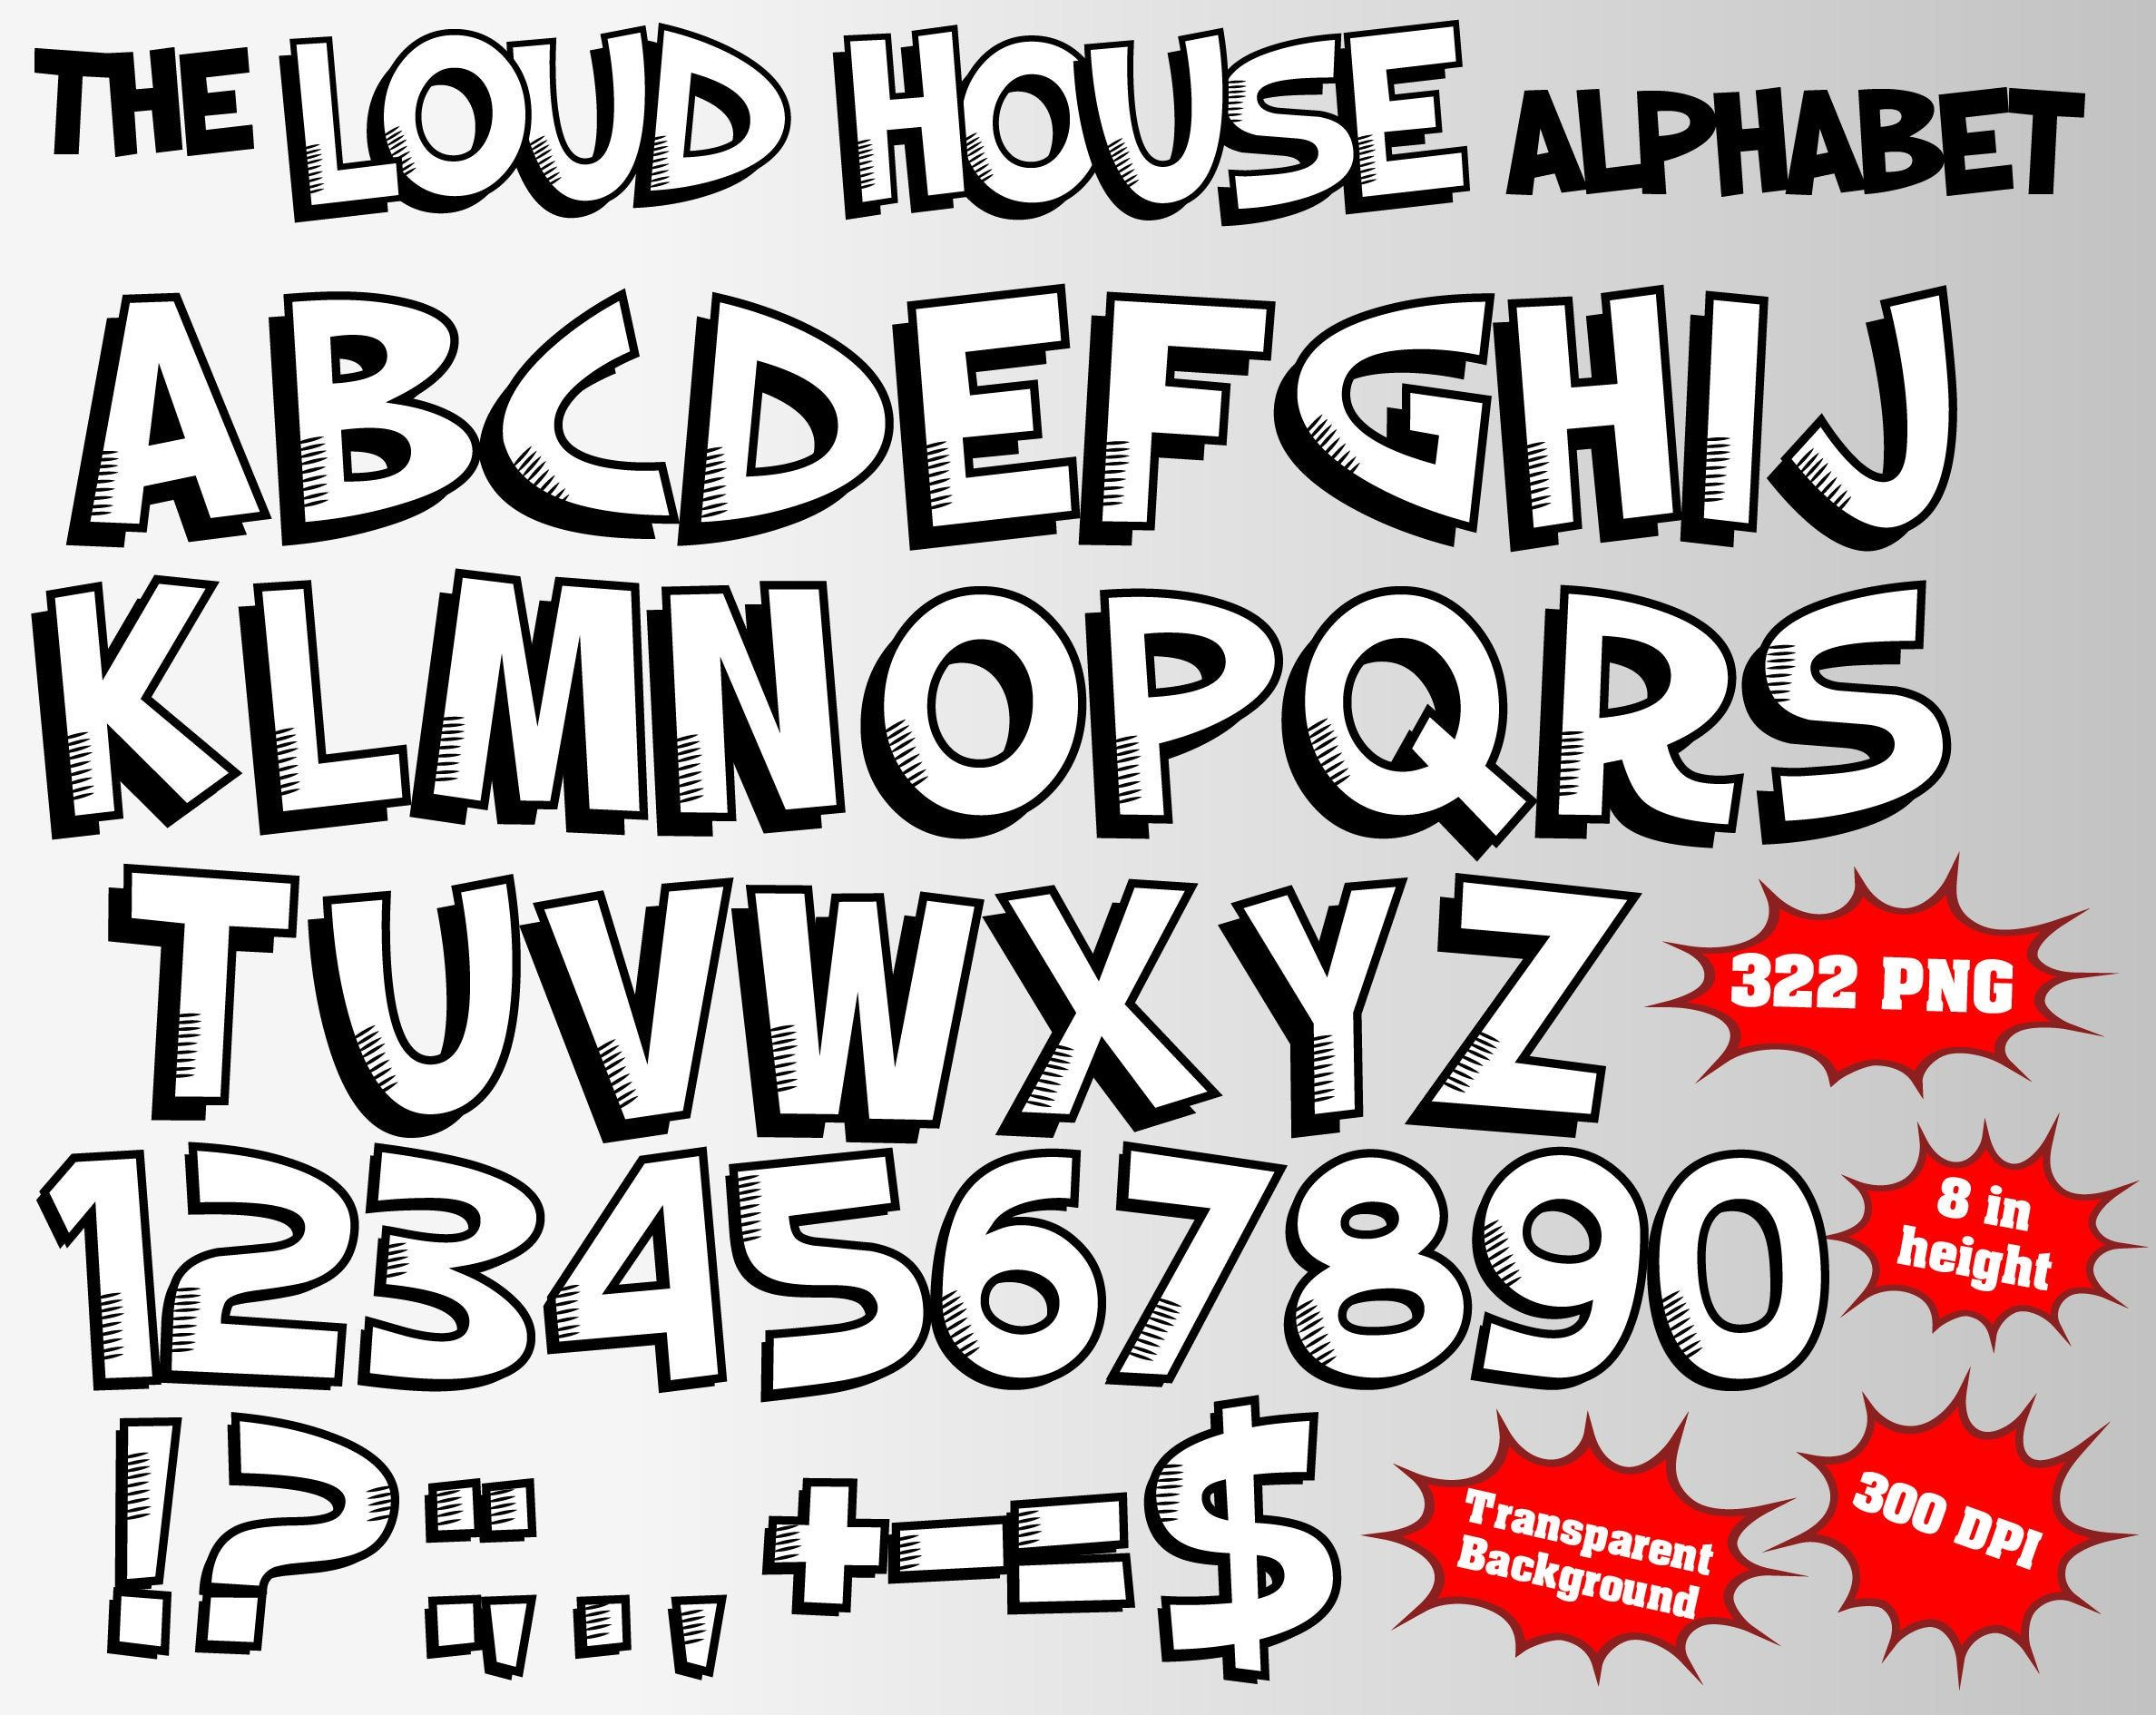 The Loud House Alphabet Numbers and Symbols 322 PNG